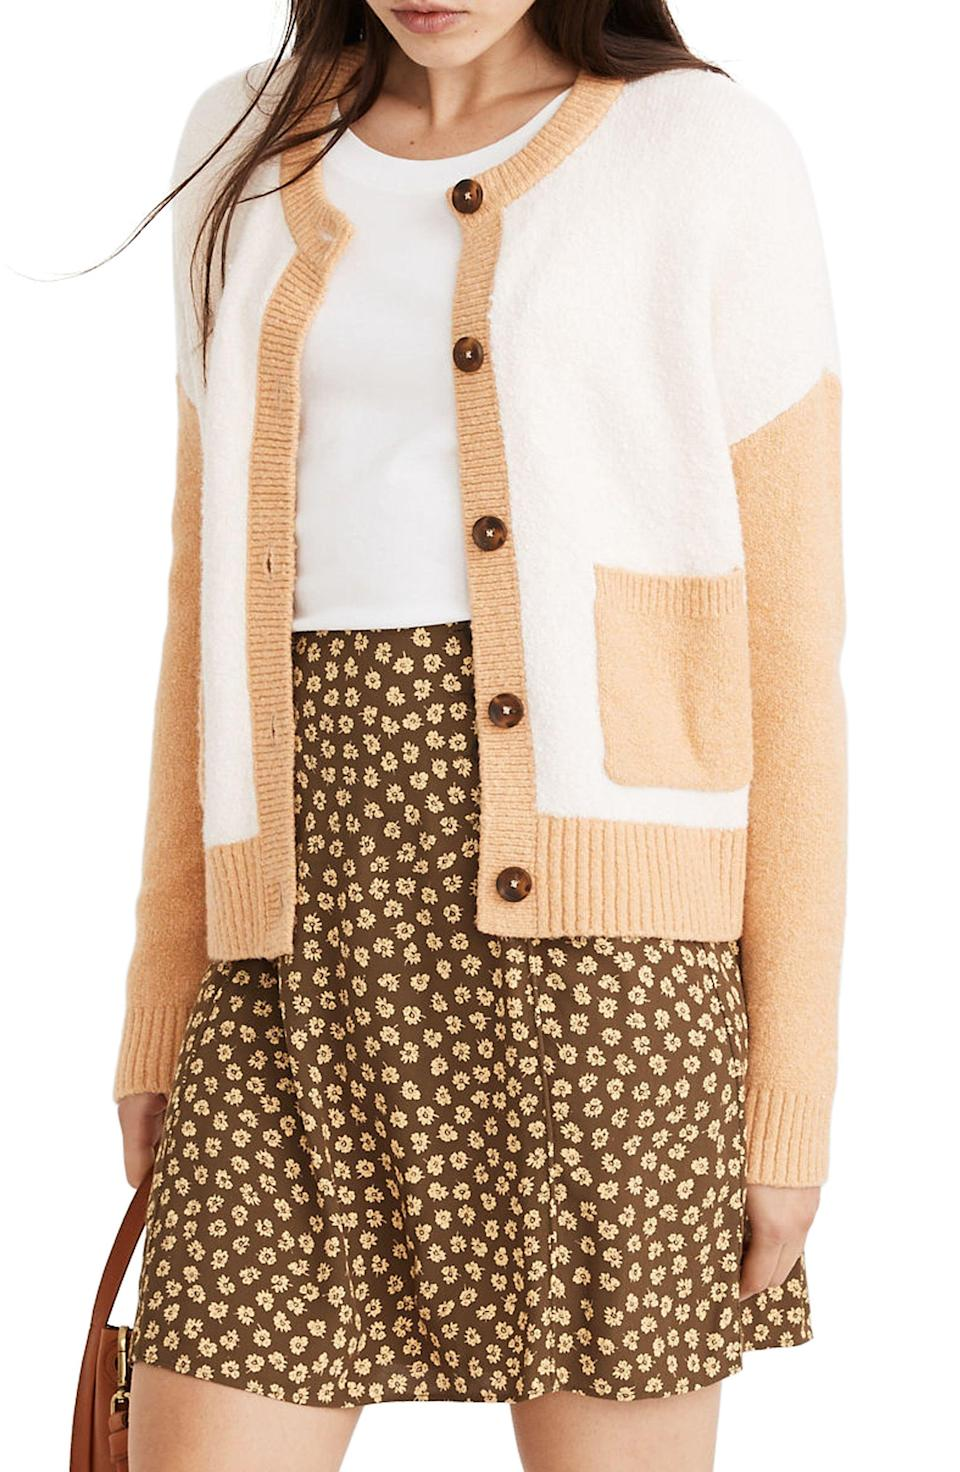 """<p><strong>MADEWELL</strong></p><p>nordstrom.com</p><p><strong>$30.20</strong></p><p><a href=""""https://go.redirectingat.com?id=74968X1596630&url=https%3A%2F%2Fwww.nordstrom.com%2Fs%2Fmadewell-colburne-colorblock-coziest-textured-yarn-cardigan-sweater%2F5707558&sref=https%3A%2F%2Fwww.redbookmag.com%2Flife%2Fg34807129%2Fnordstrom-black-friday-cyber-monday-deals-2020%2F"""" rel=""""nofollow noopener"""" target=""""_blank"""" data-ylk=""""slk:Shop Now"""" class=""""link rapid-noclick-resp"""">Shop Now</a></p><p><strong><del>$89.50</del> $30.20 (66% off)</strong></p><p>A chic beige and cream cardigan at more than half off?! I'm sold. </p>"""